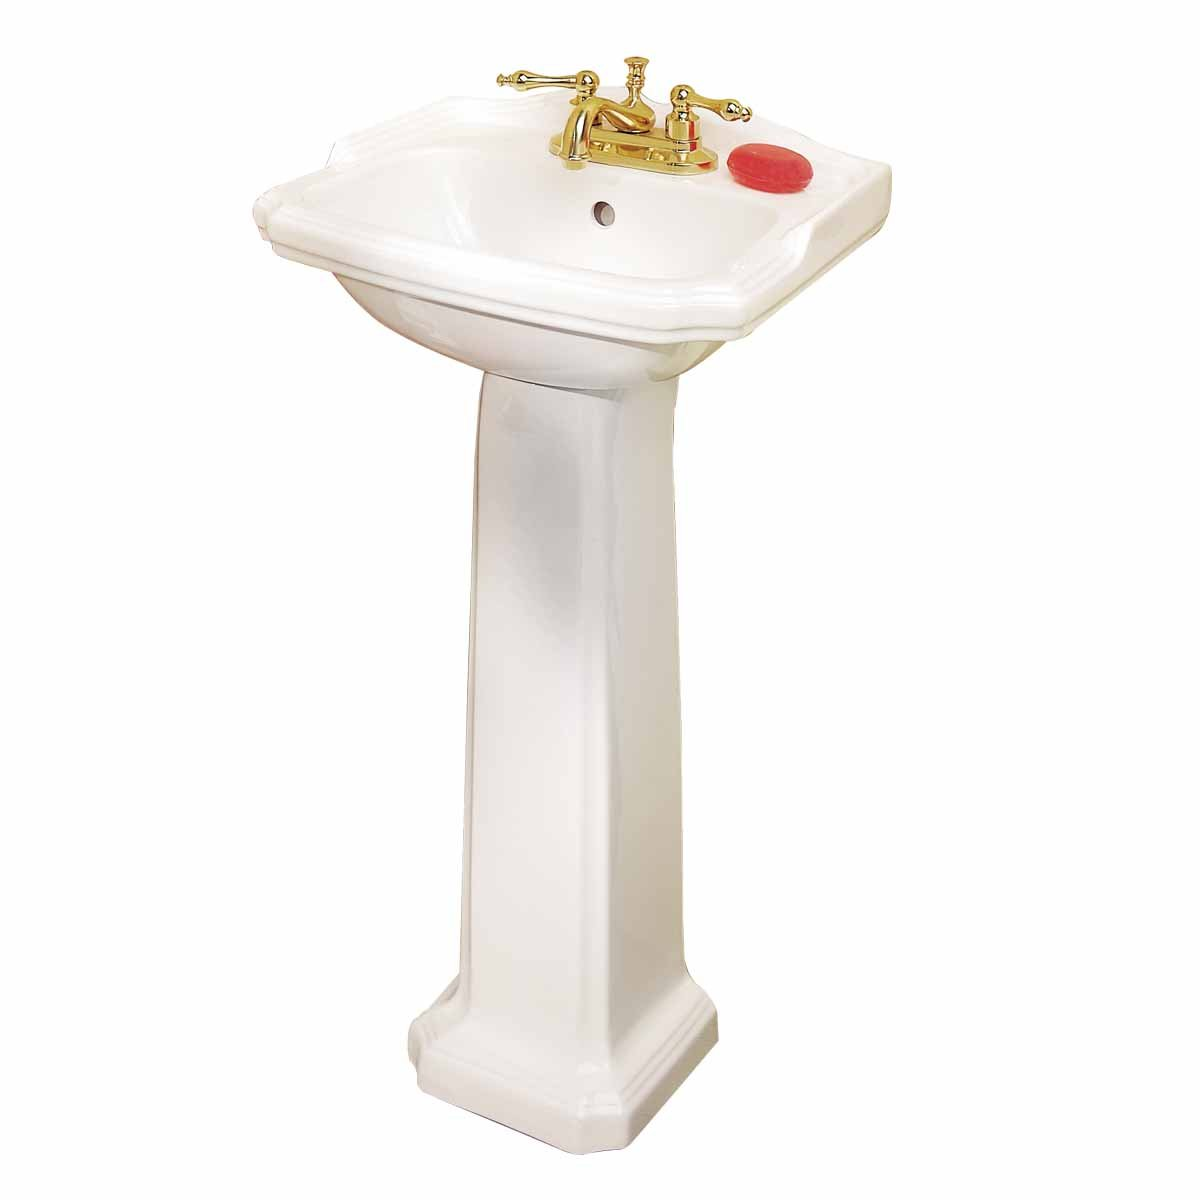 pegasus aquasource installation ideas pedestal to how install our sink week orc great fresh of home ornamental instructions